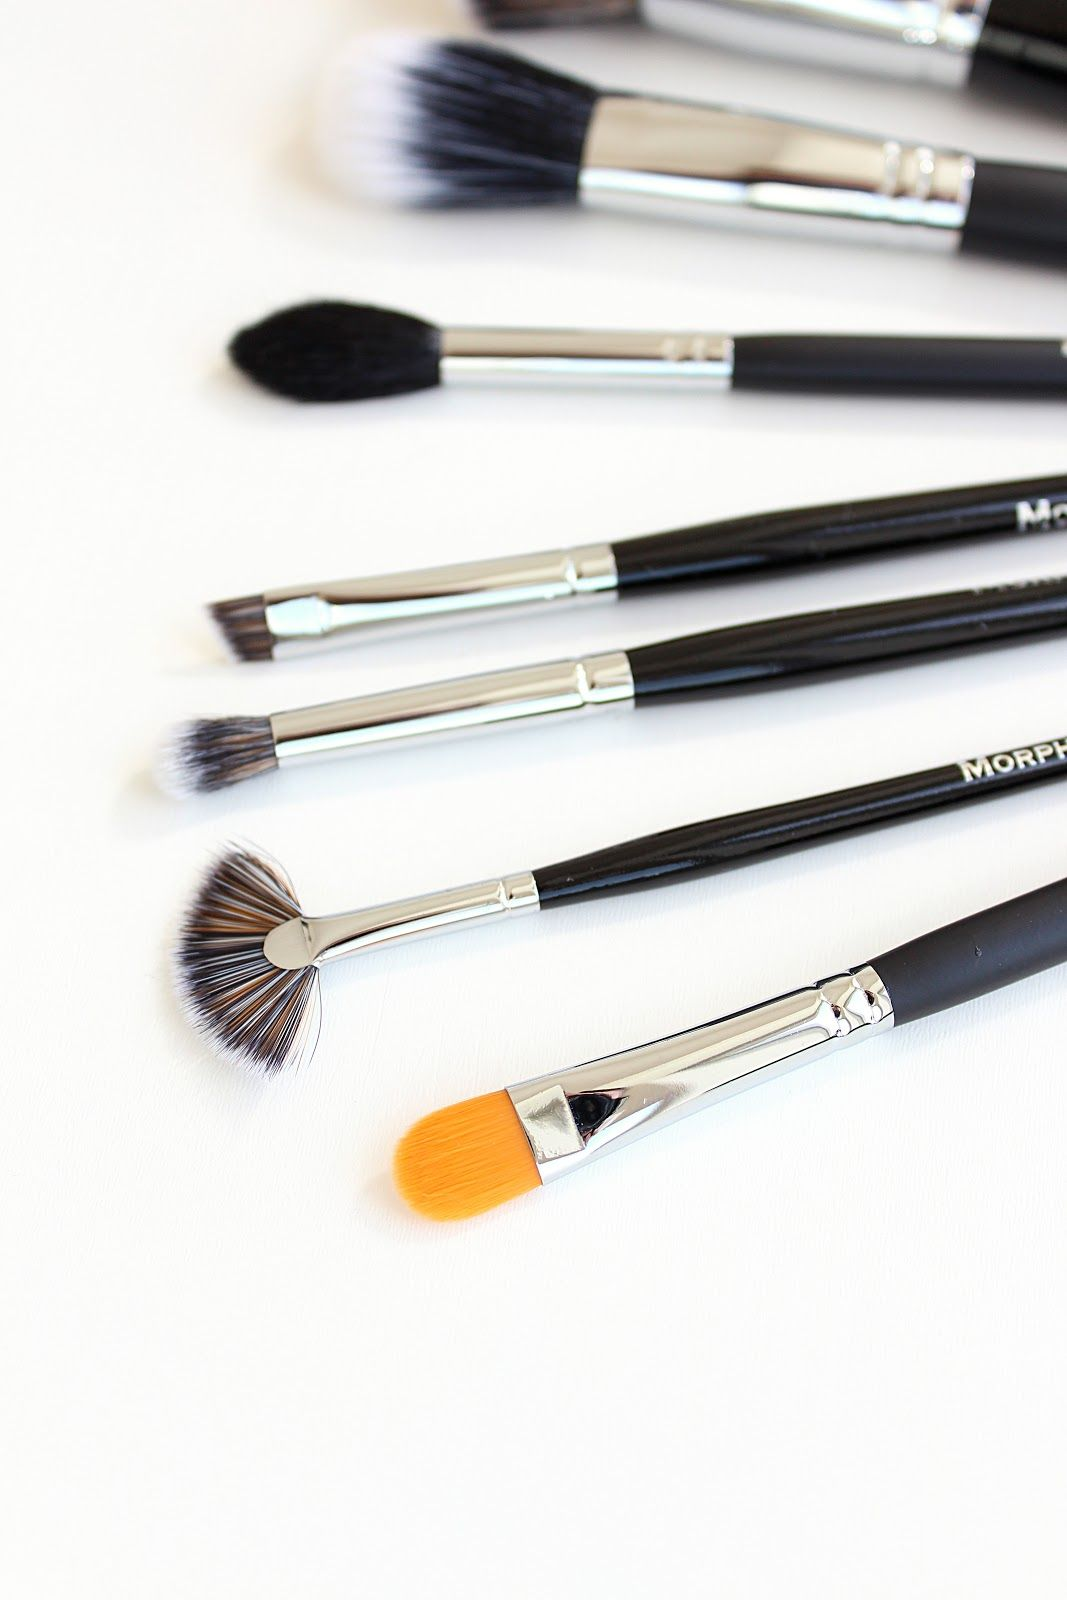 Morphe Brushes Haul Life in Excess Blog Makeup needs